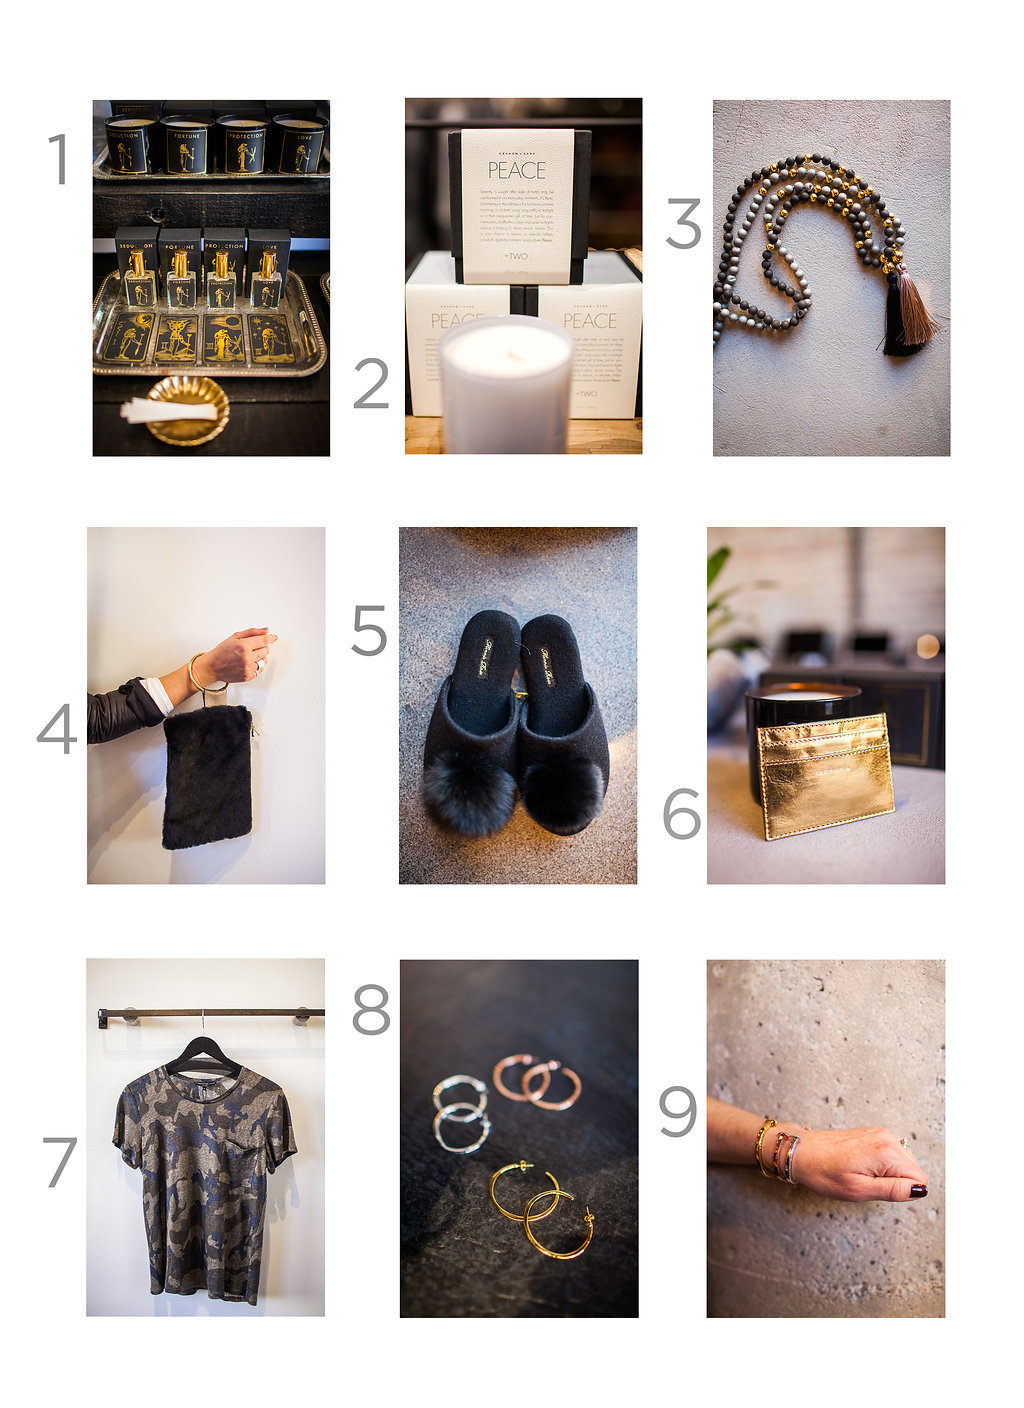 1. Seduction, Potion Collection Candle and Perfume, $45 and $55  2. Graham + Kane Peace Candle, $45  3. Gorjana Necklace, $95  4. Well Fair Bags Shearling Ring Clutch, $198  5. Minnie Rose Slippers, $165  6. Intropia Wallet, $35  7. Generation Love Boyfriend Tee, $98  8. Gorjana Arc Hoops, $60  9. Giles and Brother Railroad Spike Bracelet, $85